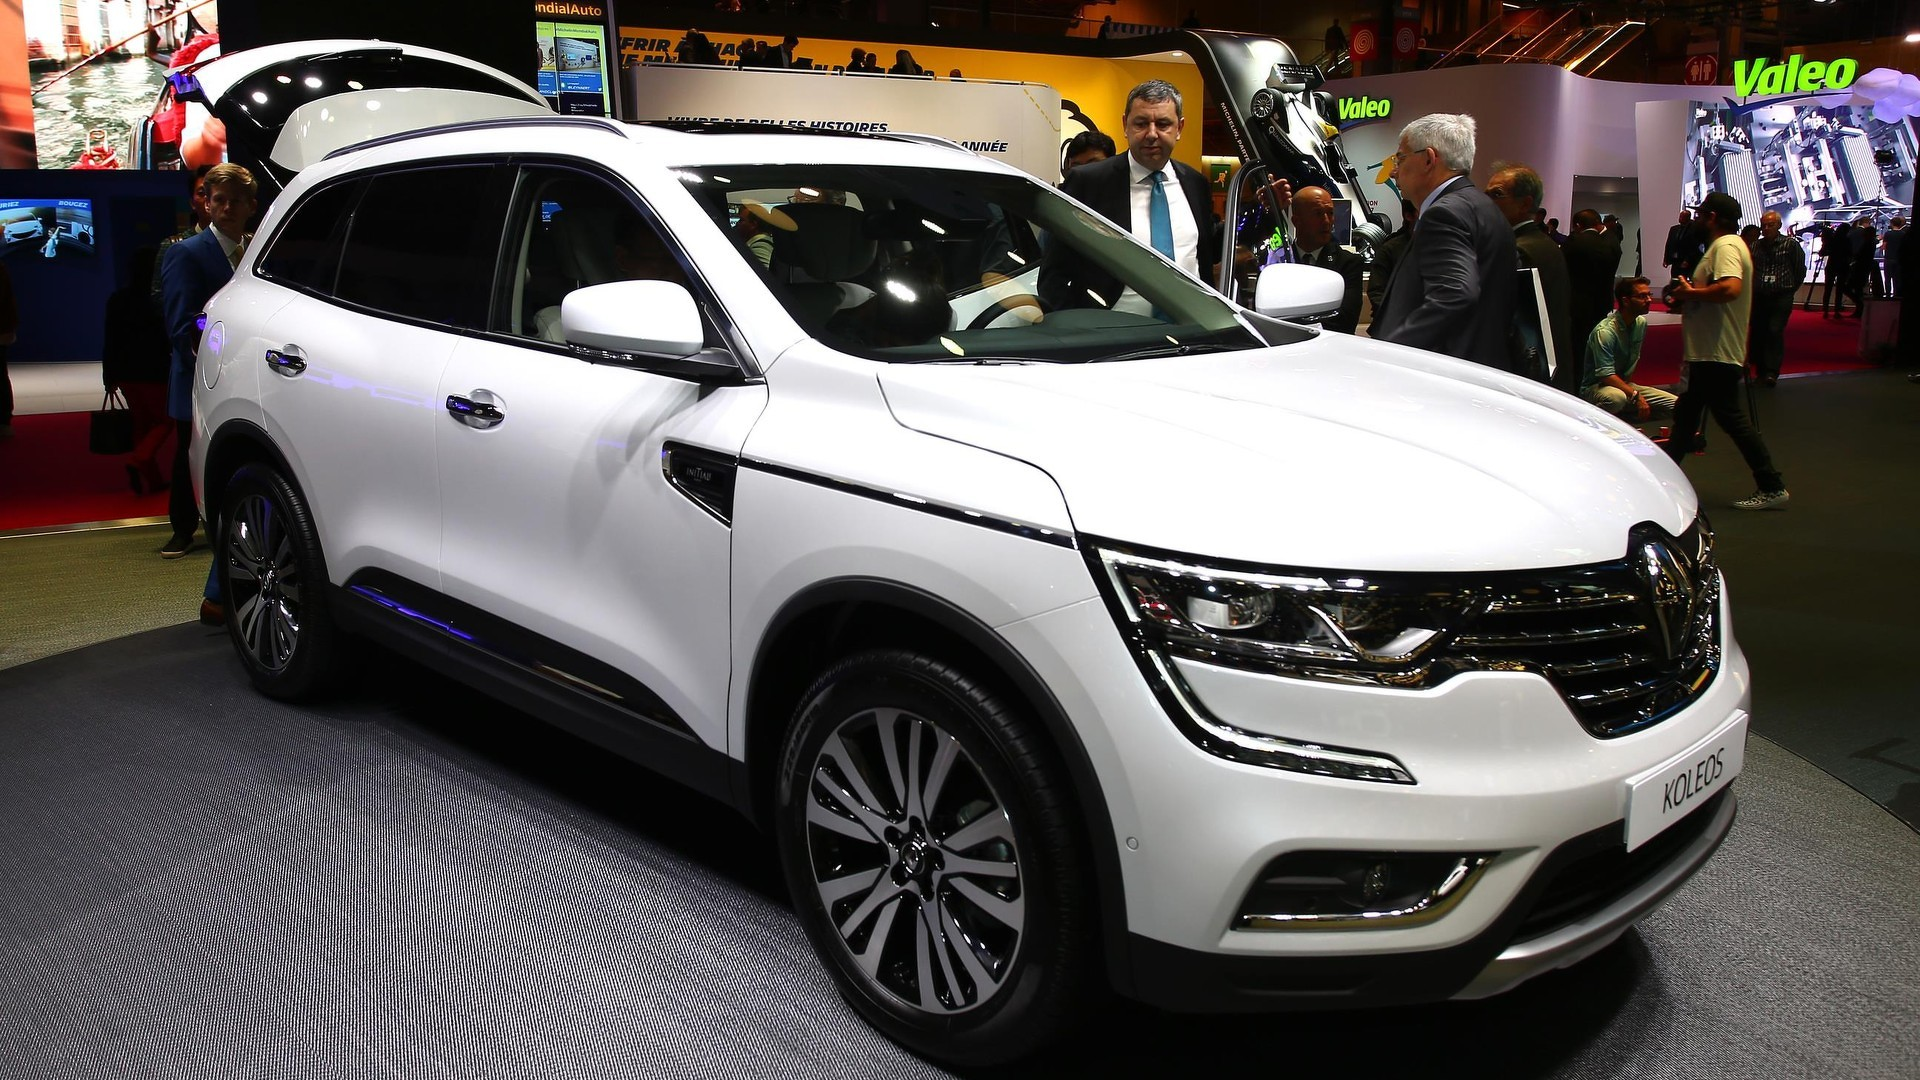 renault koleos suv makes european debut in paris. Black Bedroom Furniture Sets. Home Design Ideas